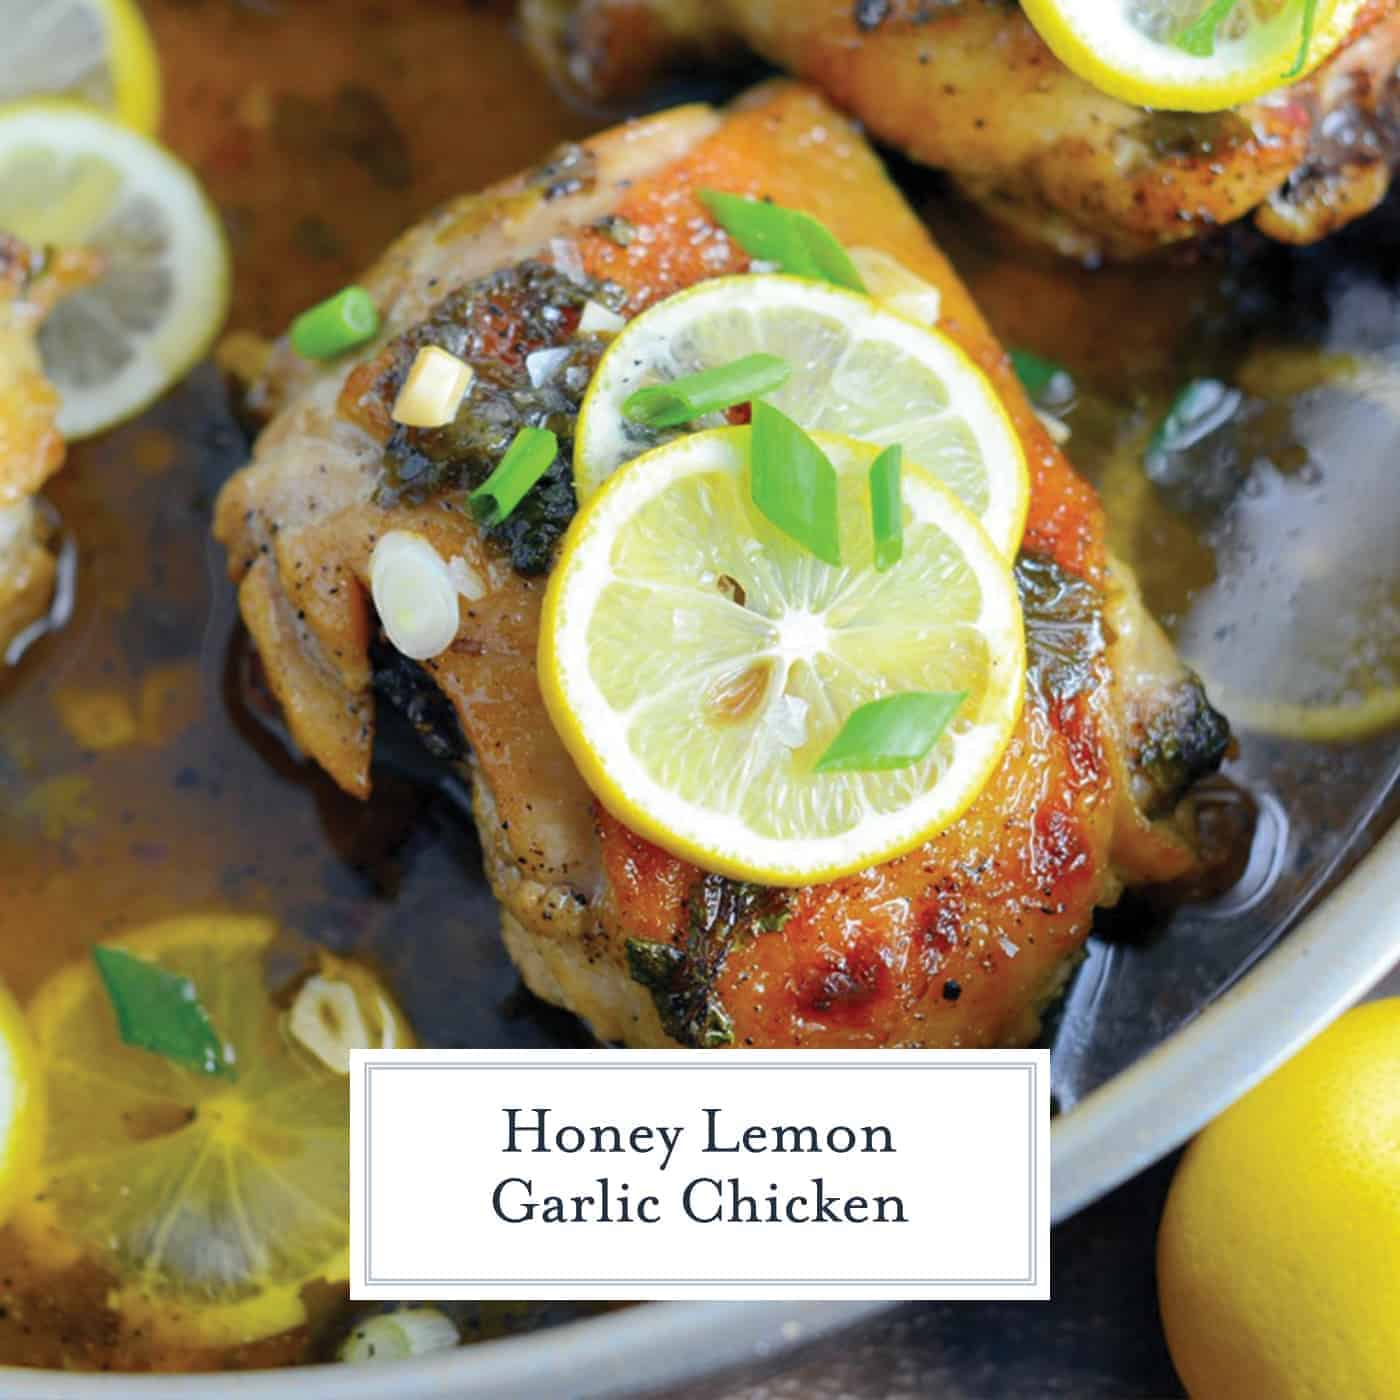 Lemon Garlic Chicken is an easy dinner recipe made with garlic and honey to make this sauce bright and tasty! Serve lemon chicken over pasta, rice or toasted couscous. #chickenrecipes #lemongarlicchicken www.savoryexperiments.com